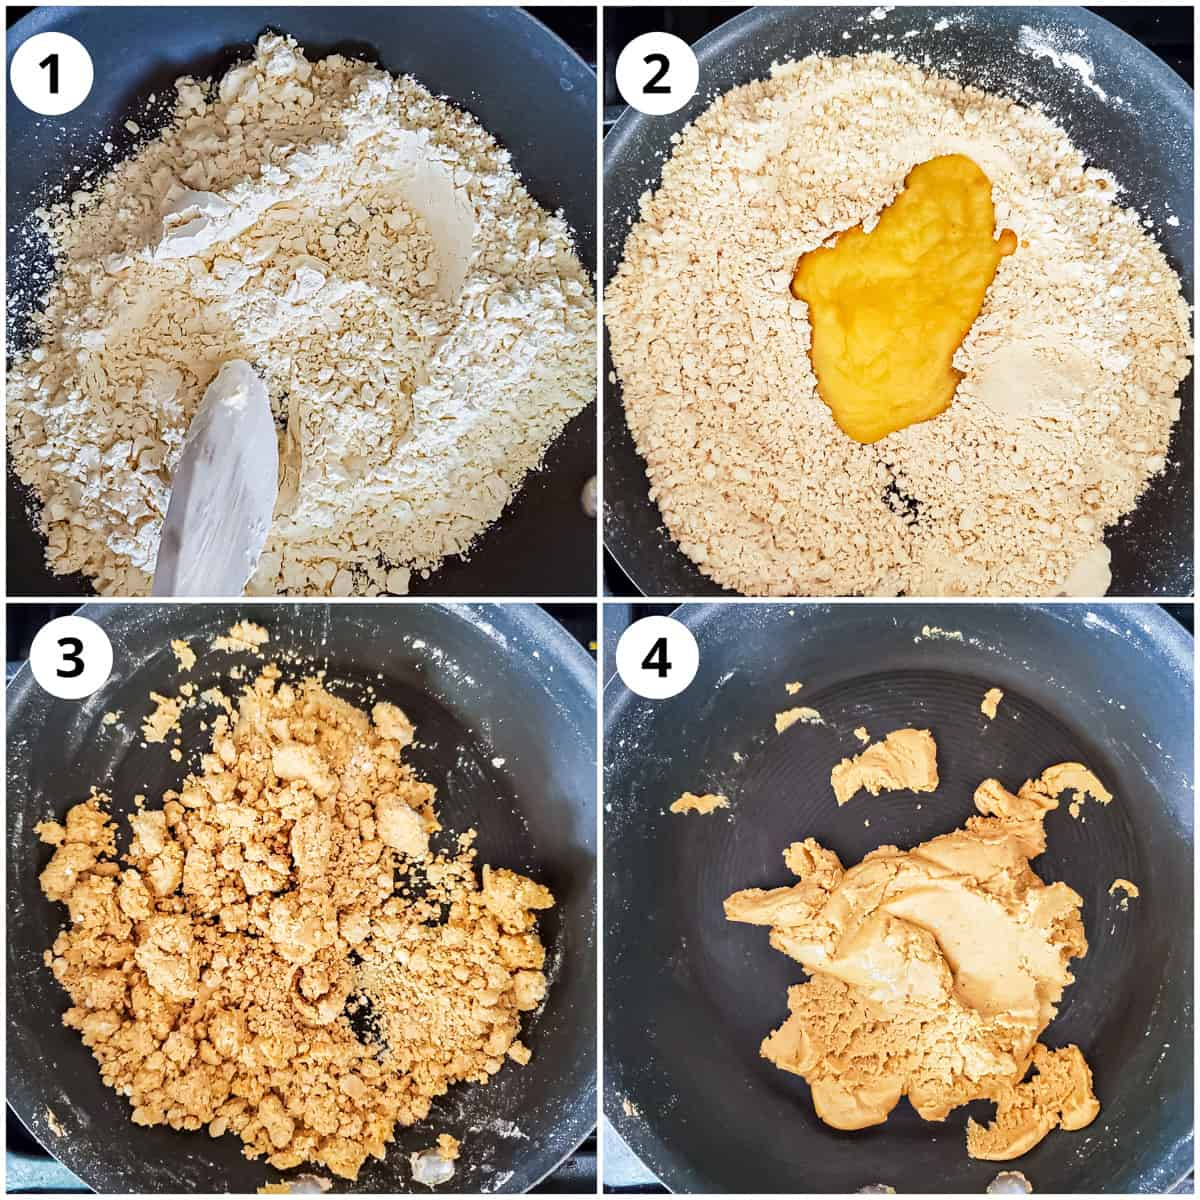 Steps for roasting besan (gram flour) with ghee